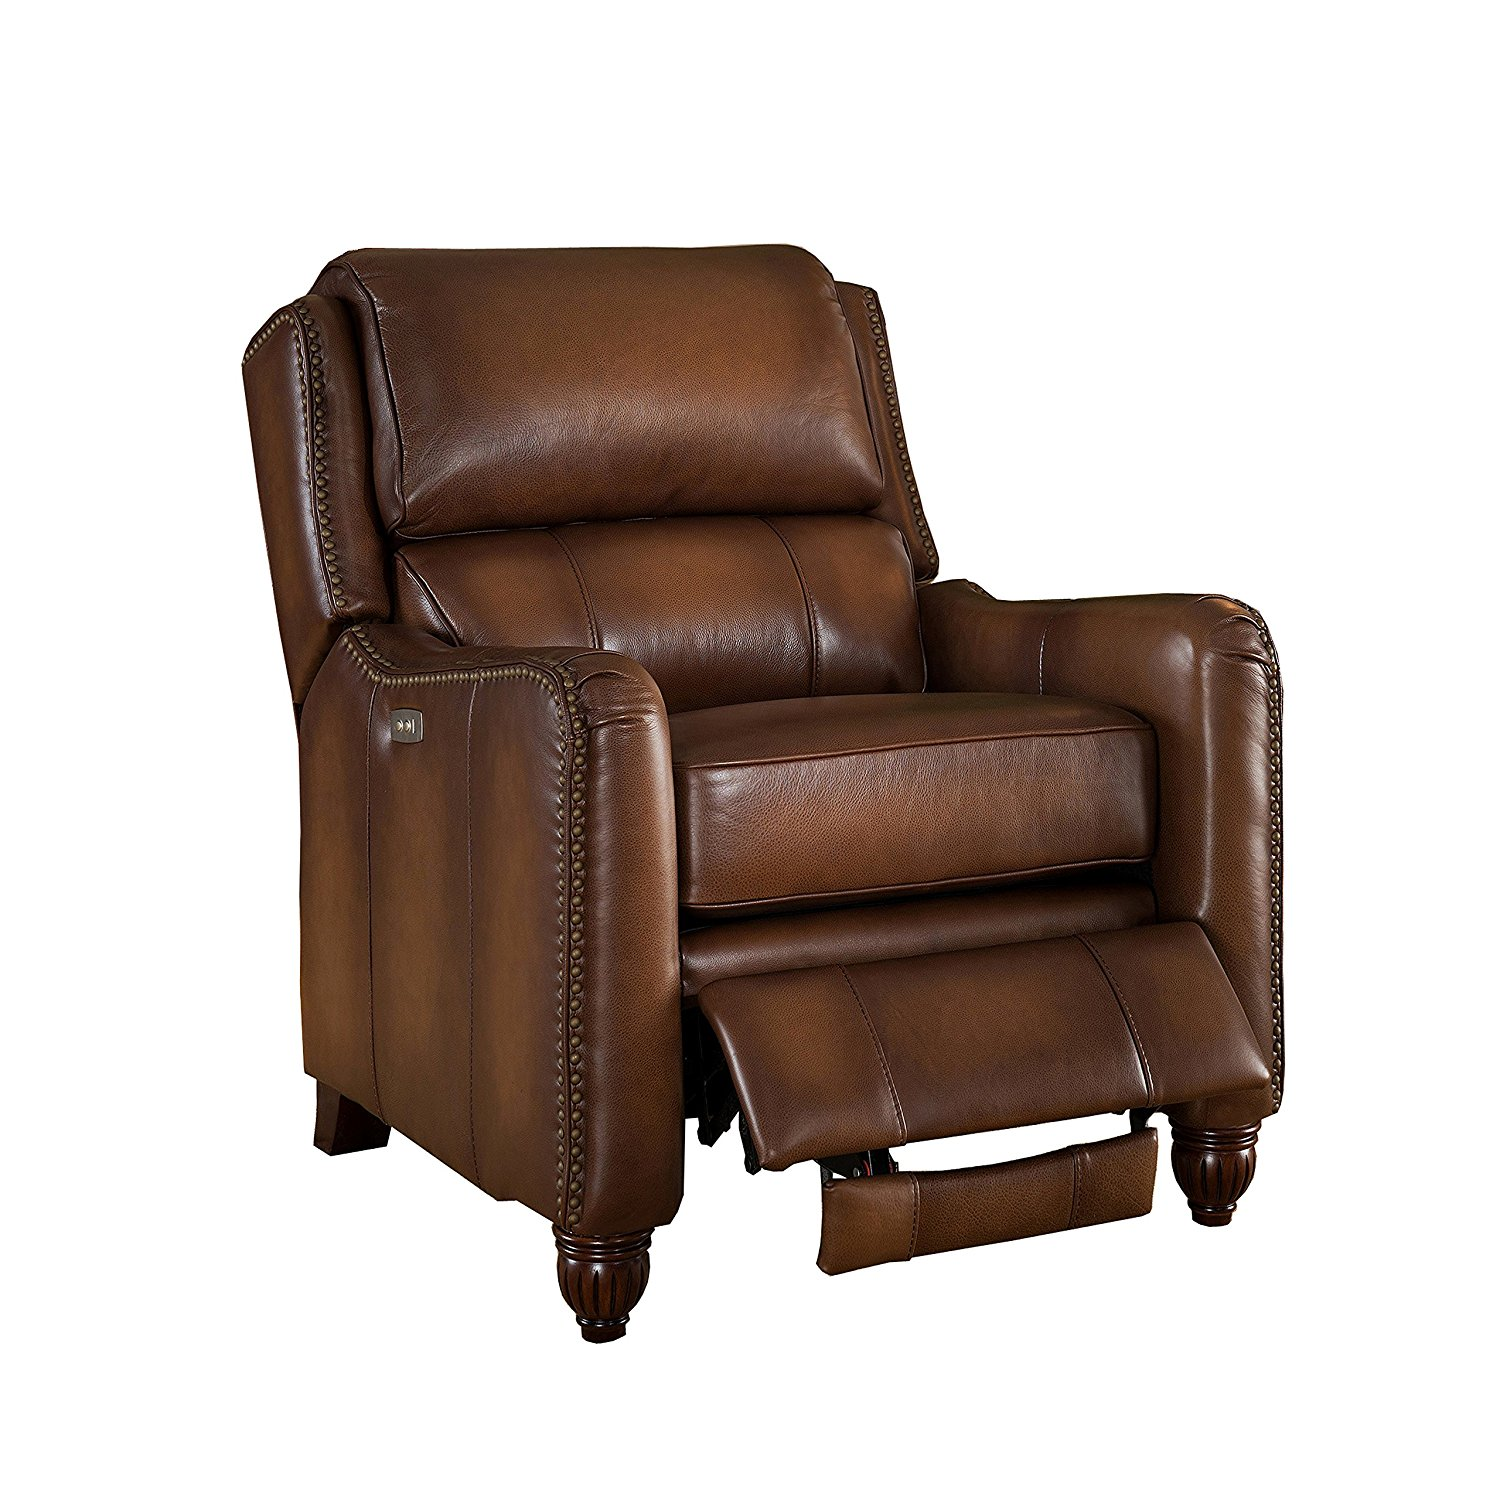 AMAX Leather - Concord 100% Leather Power Recliner, Brown